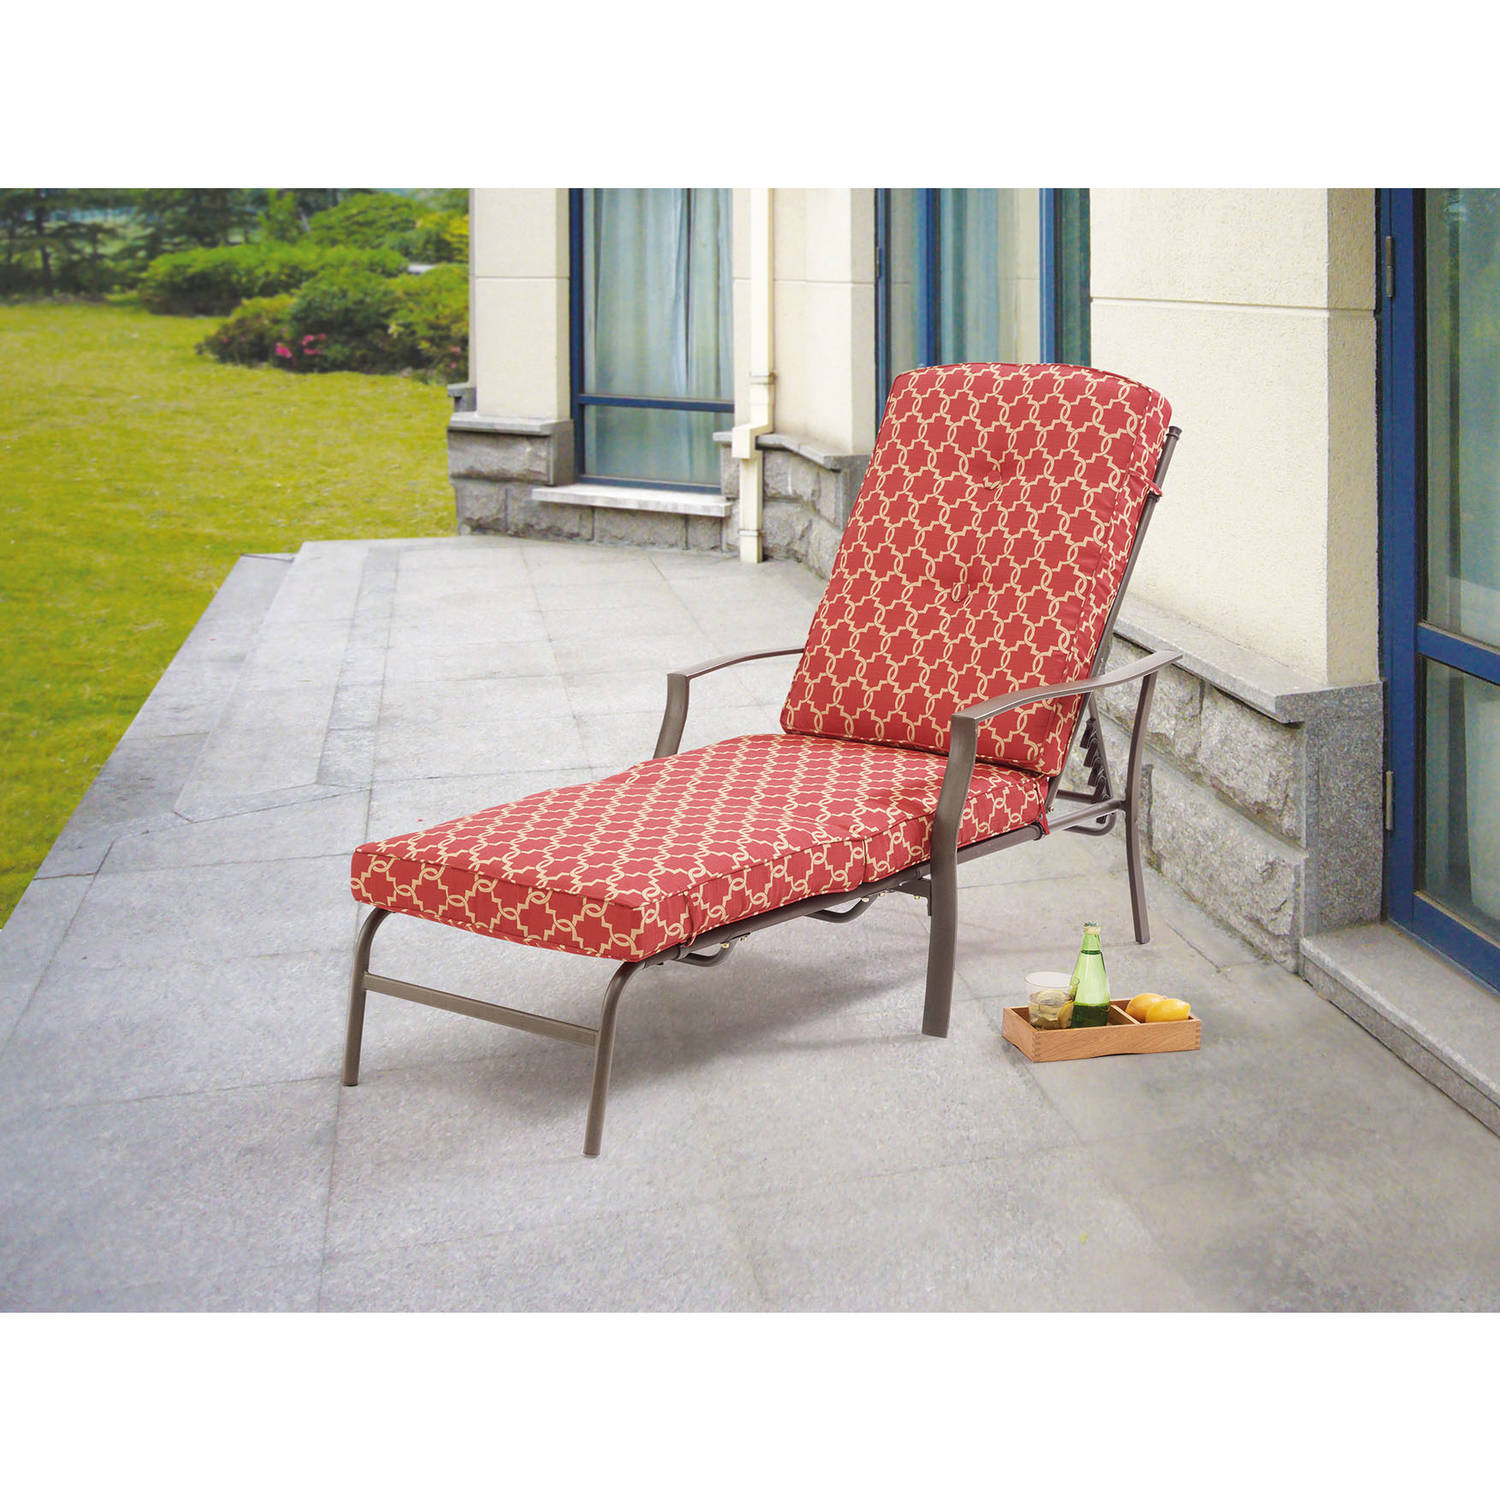 Delightful Jordan Manufacturing Outdoor Patio French Edge Chaise Cushion   Walmart.com